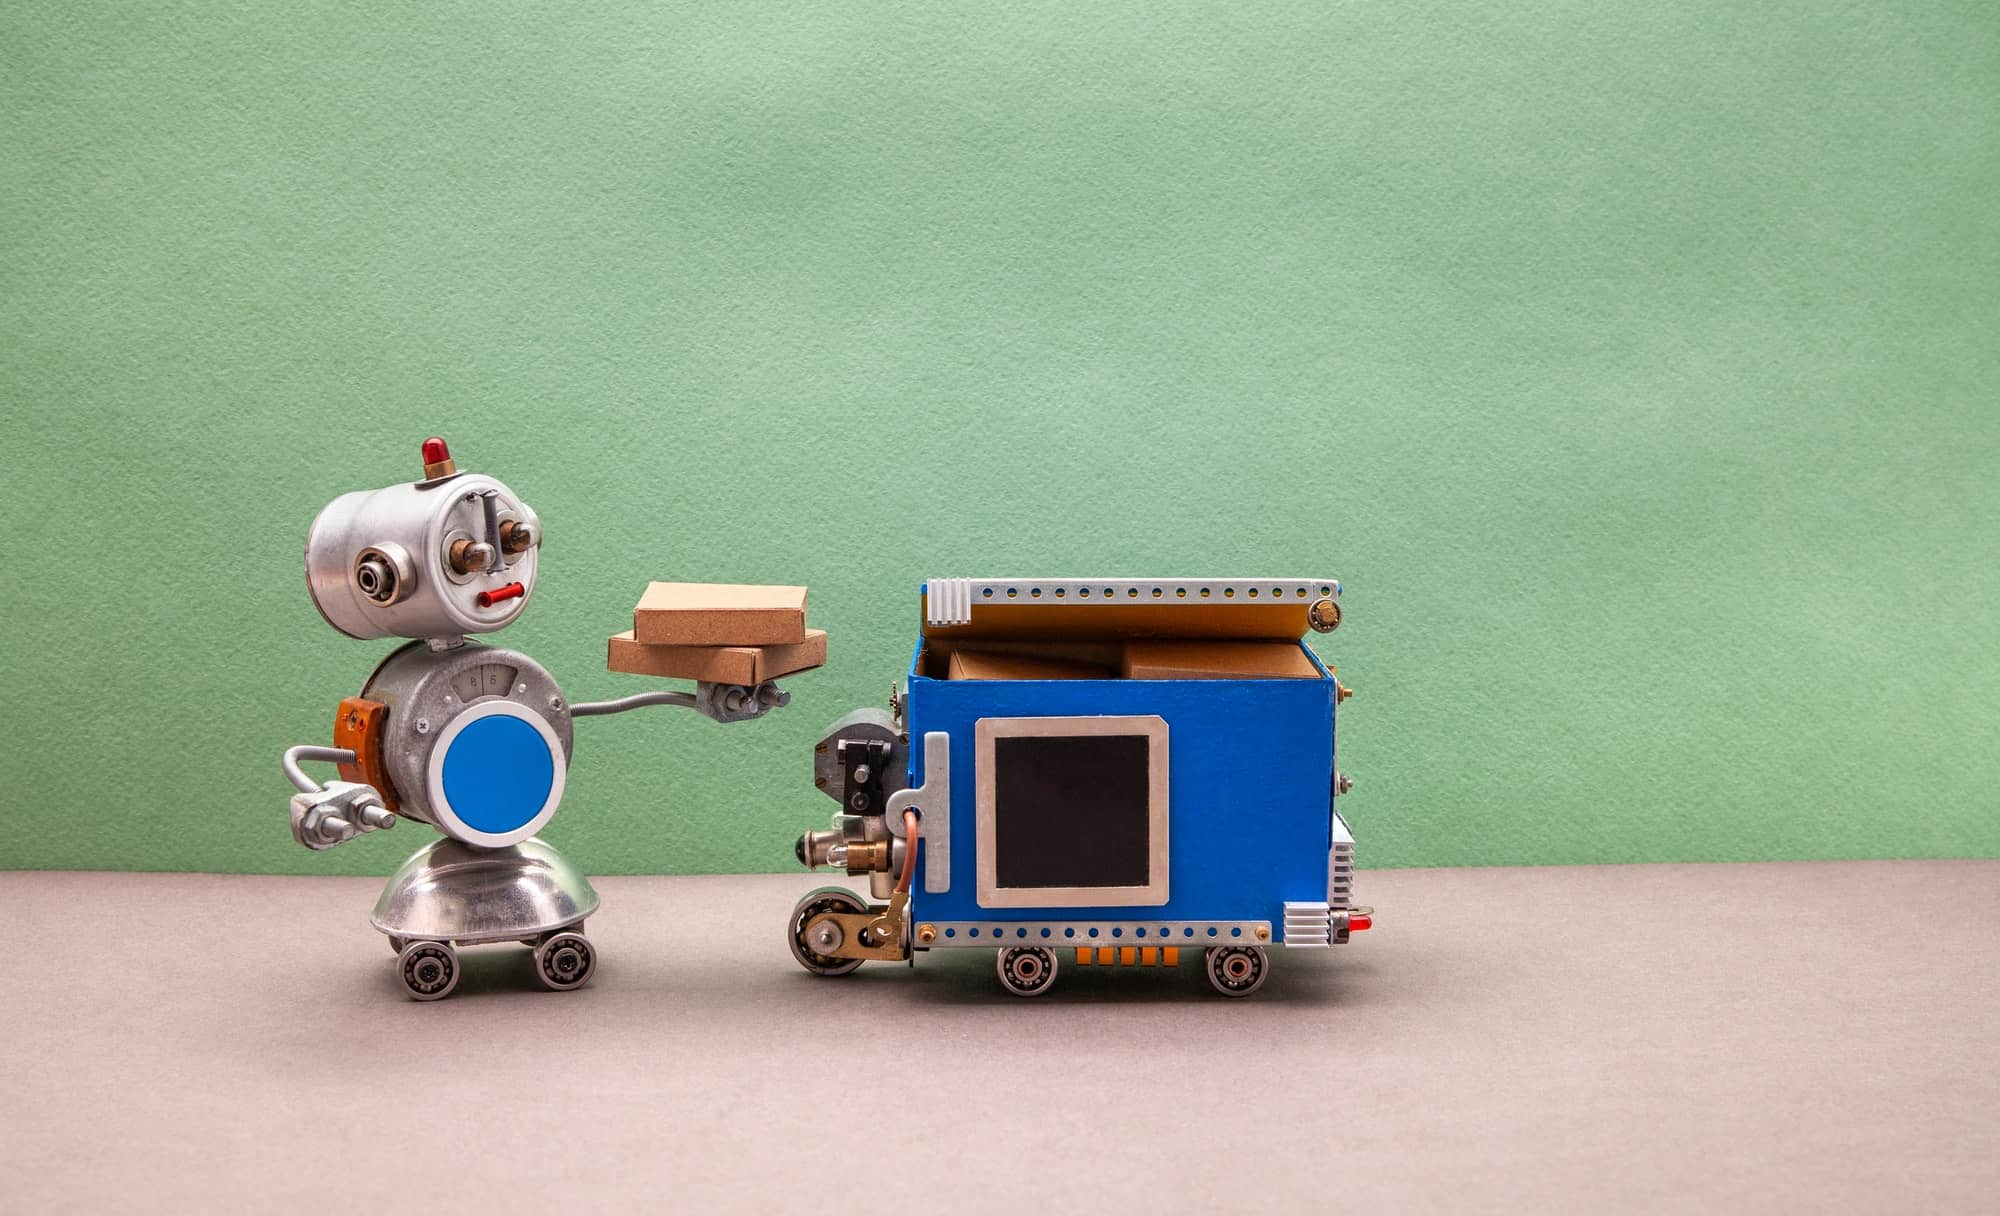 Delivery business concept. Robot toy with parcel boxes